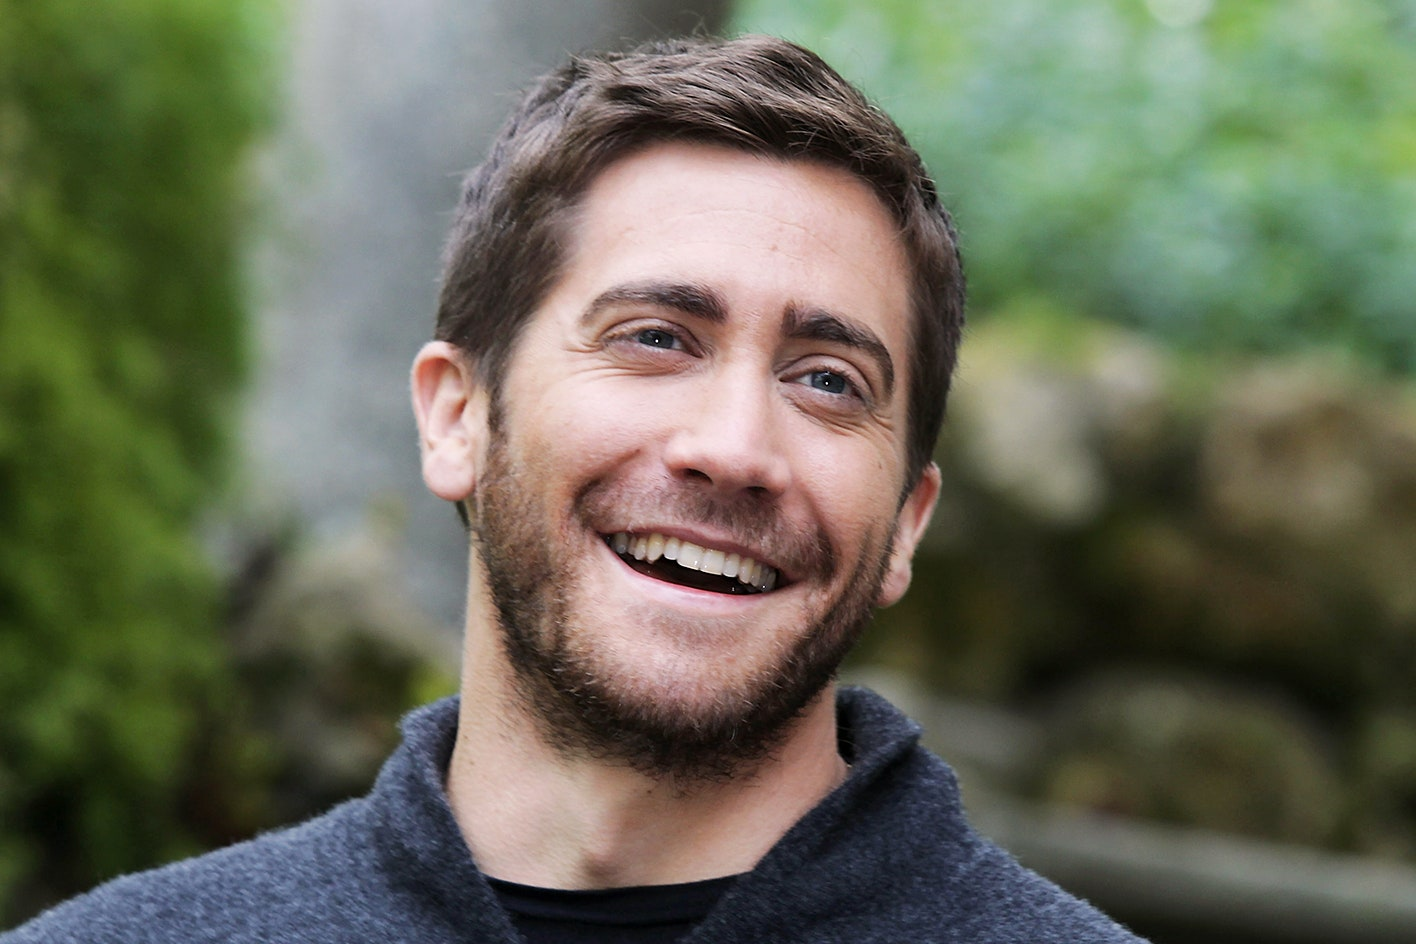 Actor Jake Gyllenhaal laughing for the camera